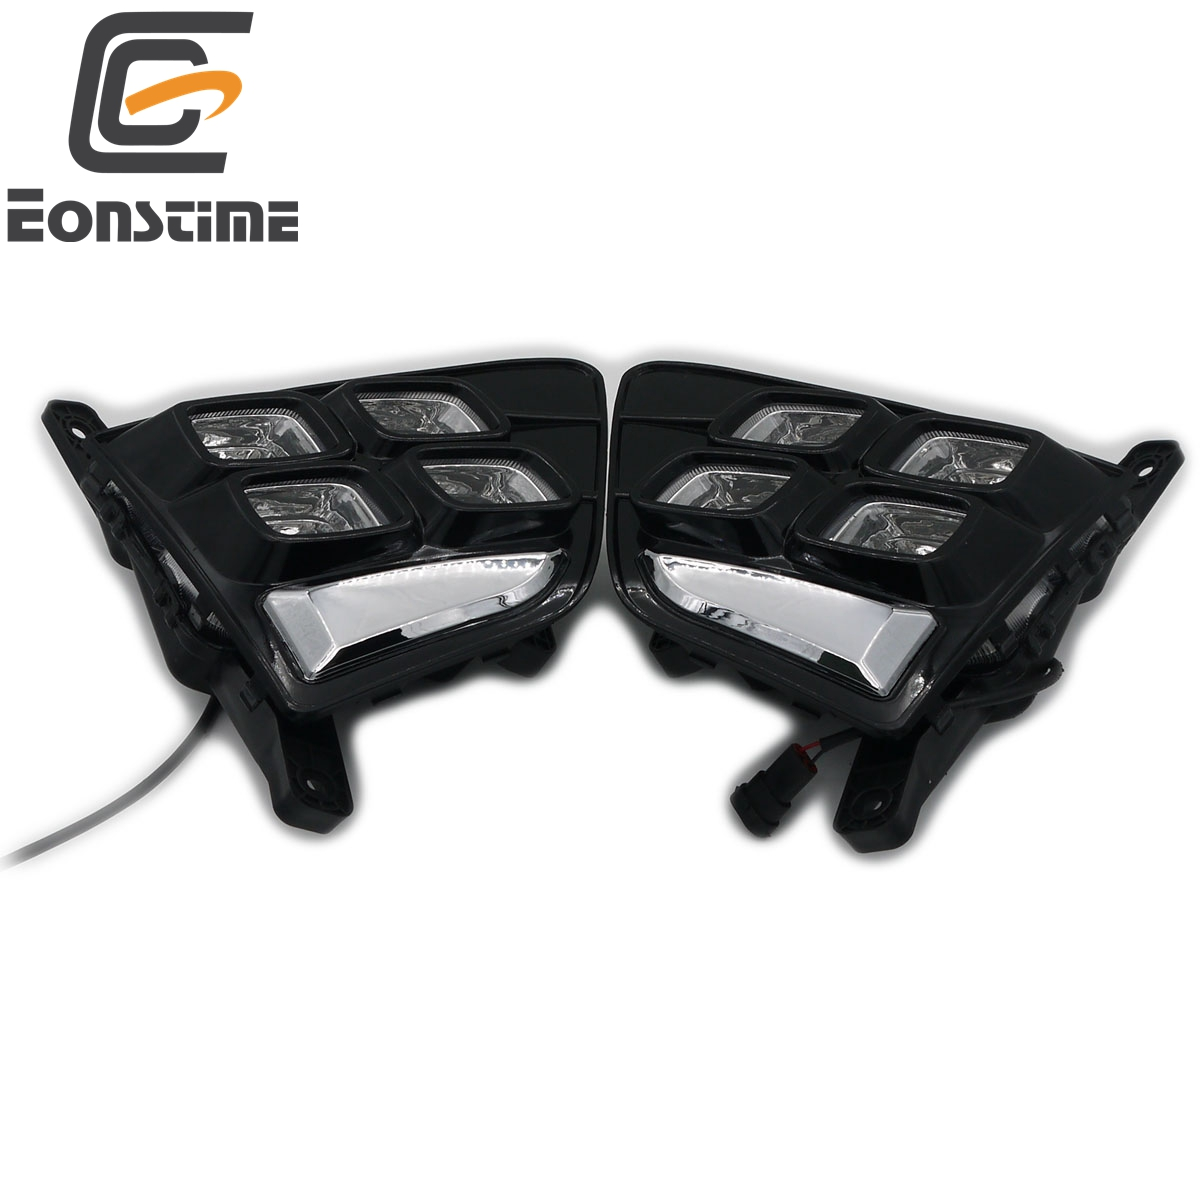 Eonstime 2pcs 12V Car DRL LED Daytime Running Light Front Fog lights For Hyundai Creta IX25 2015 2016 Auto Lamp Waterproof ABS eonstime 2pcs 12v car drl led daytime running light fog lights for ford mondeo fusion 2013 2014 2015 2016 car styling